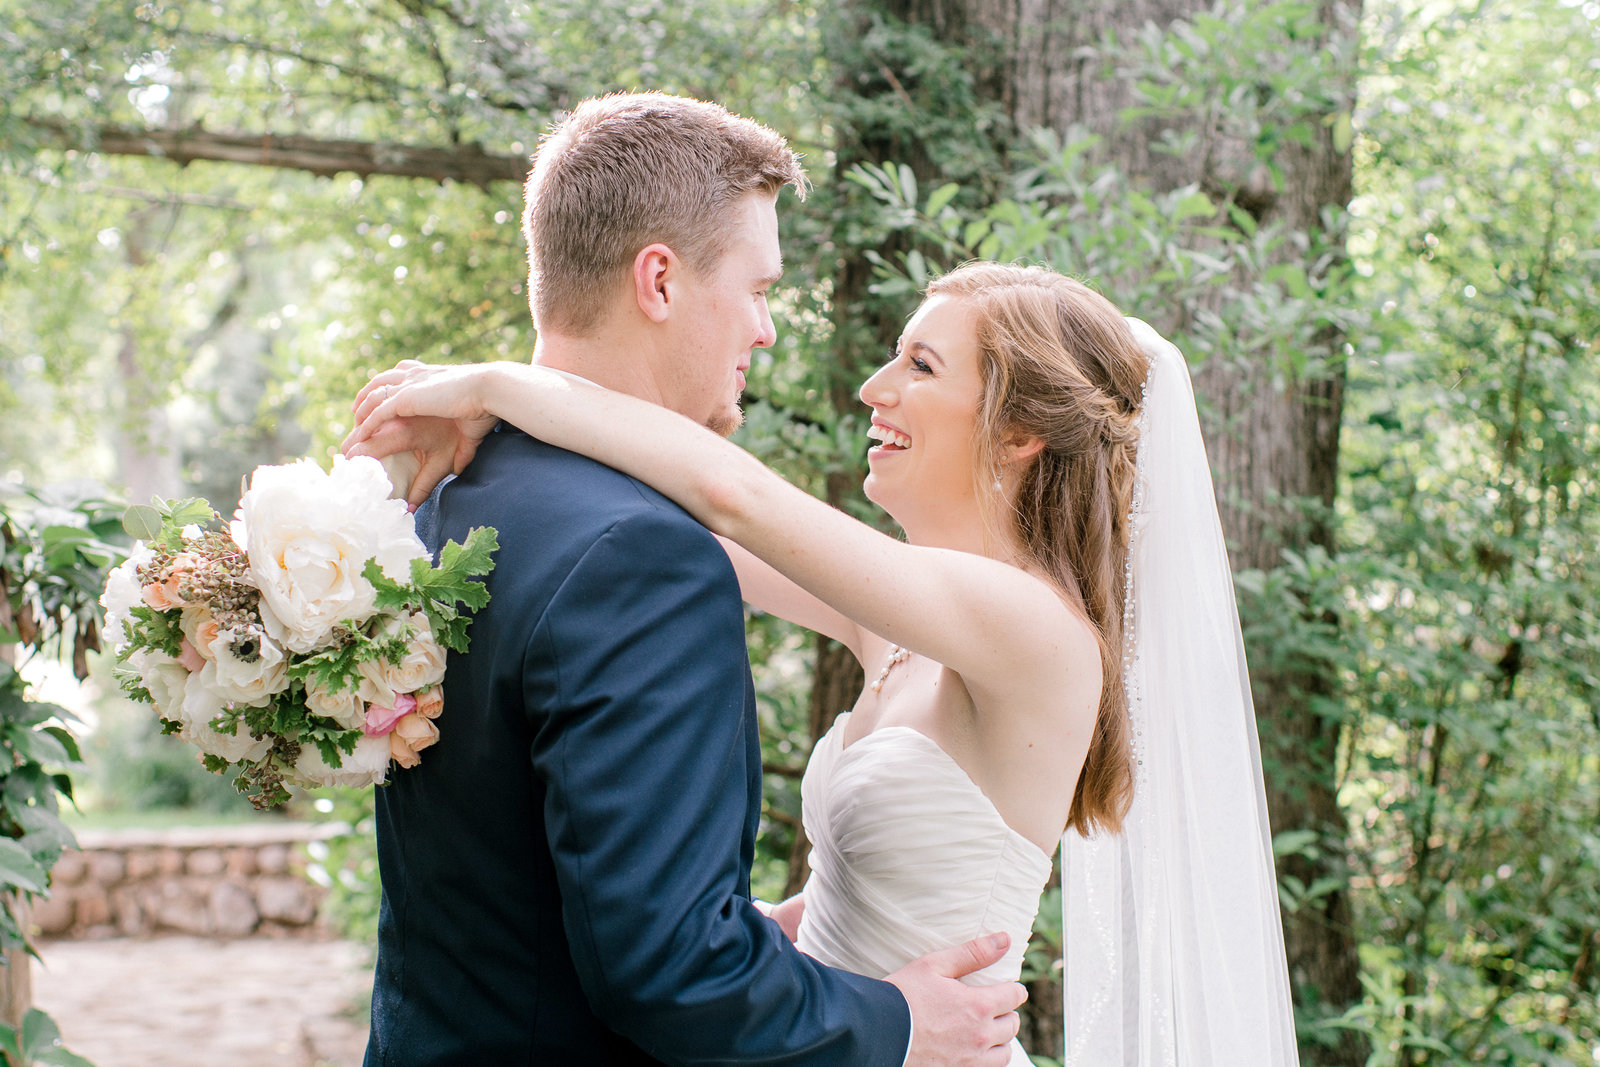 charlotte-wedding-photographer-bright-and-airy-charleston-savannah-asheville-nc-sc-north-carolina-south-carolina-alyssa-frost-photography-30